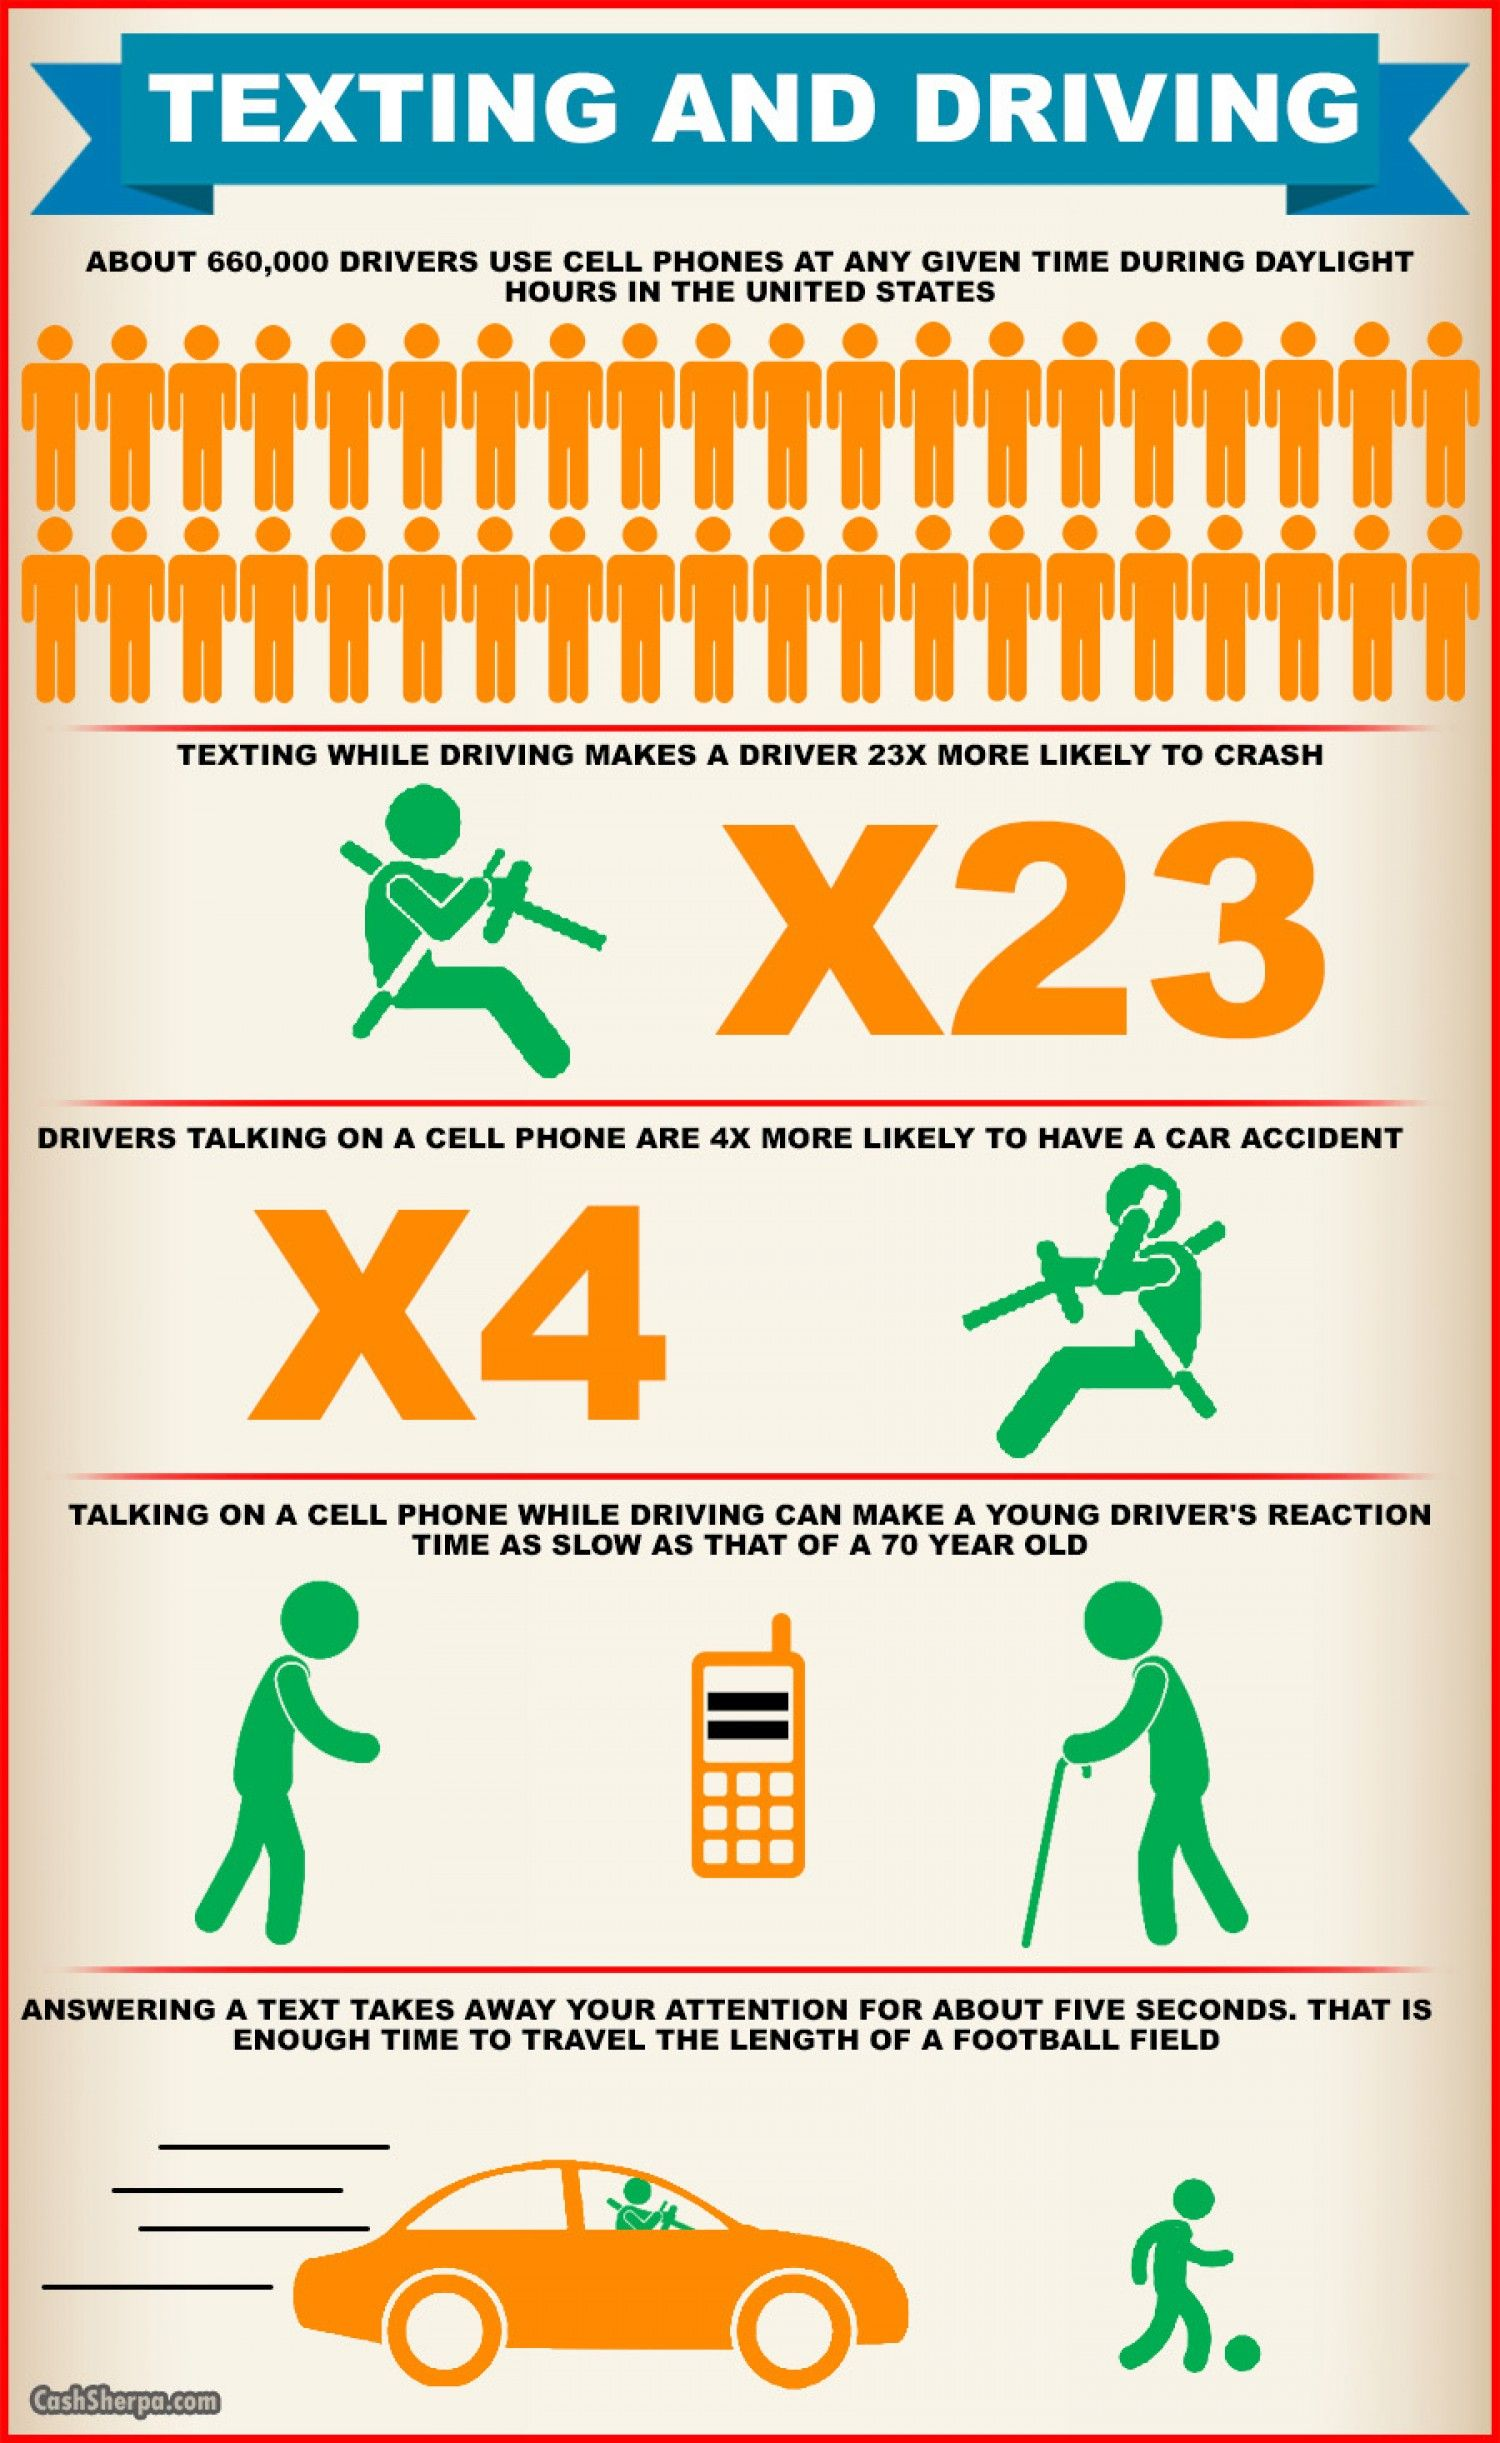 Texting and Driving Infographic Useful Classroom Images